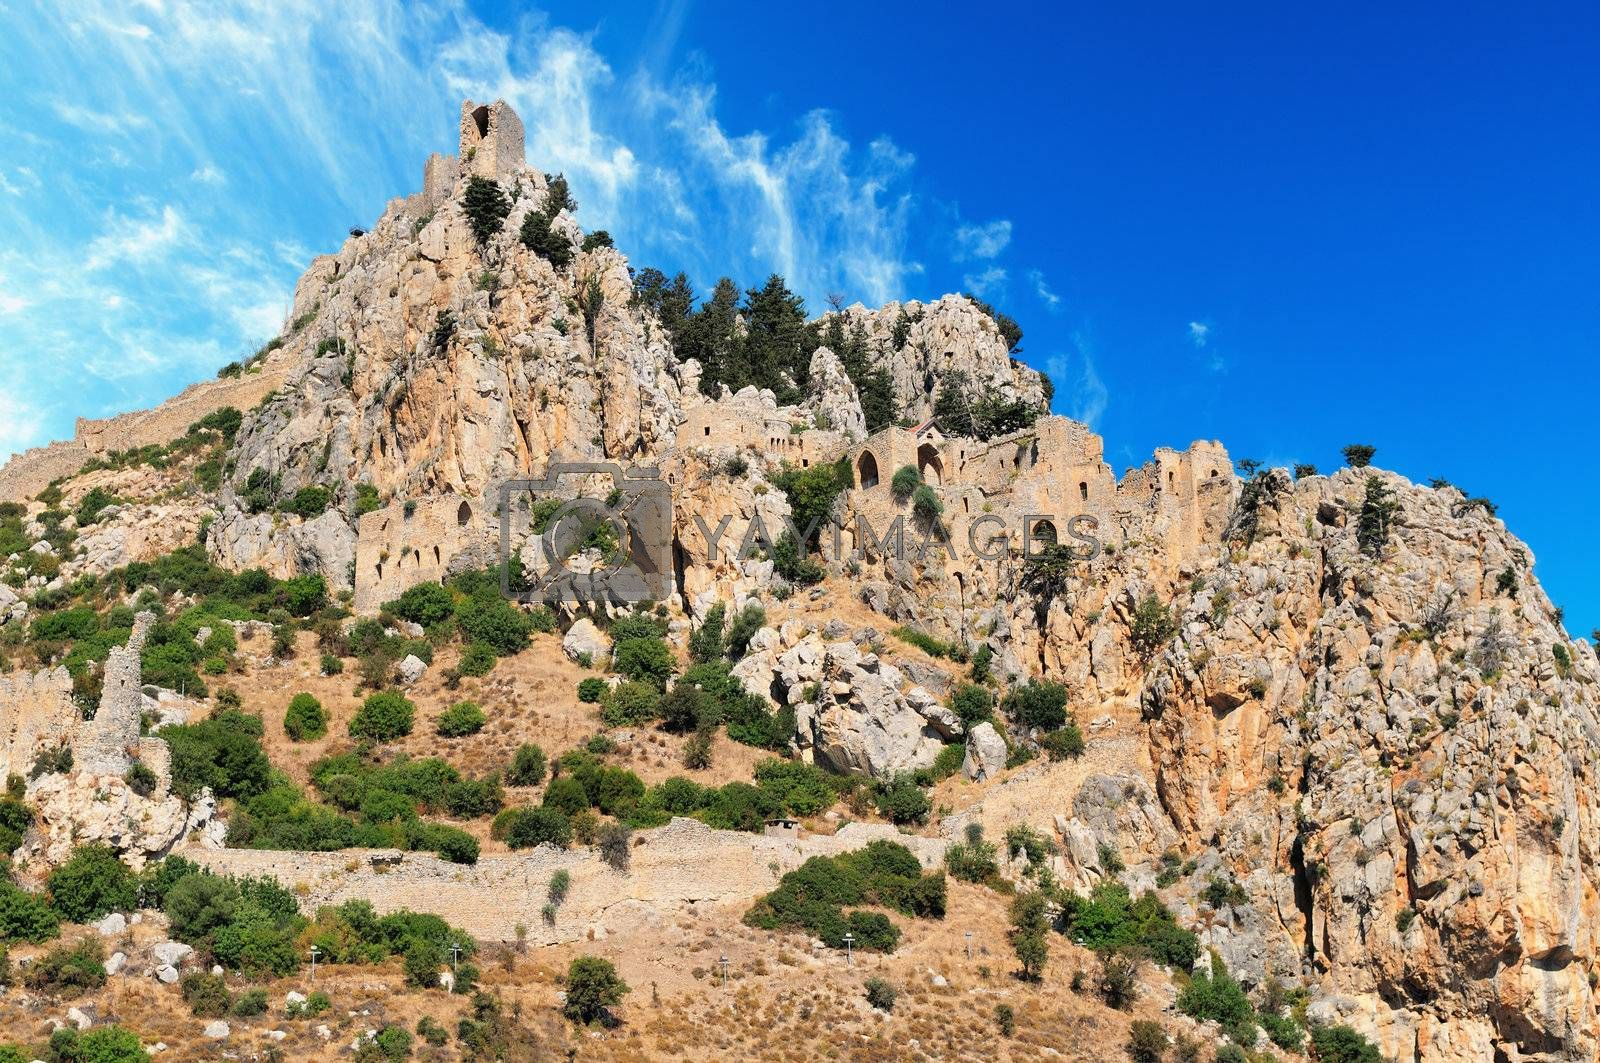 Monastery Saint Hilarion Castle on mountain in Cyprus.